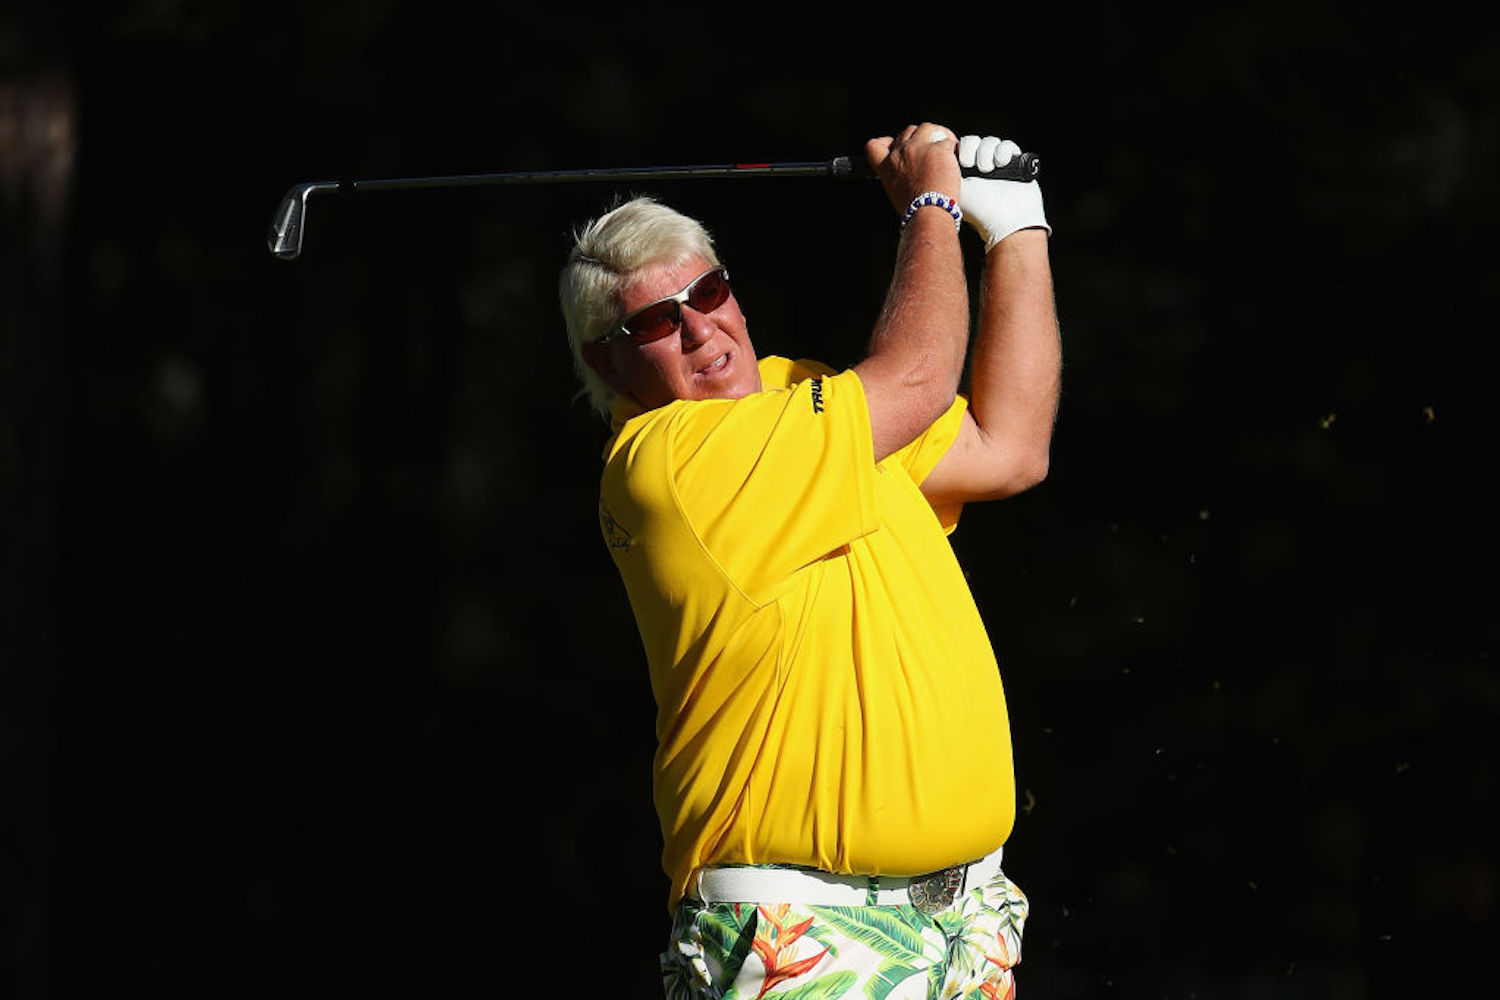 John Daly is no stranger to visiting casinos. One time, he walked out with $55,000 and threw it all off a bridge to spite his wife.